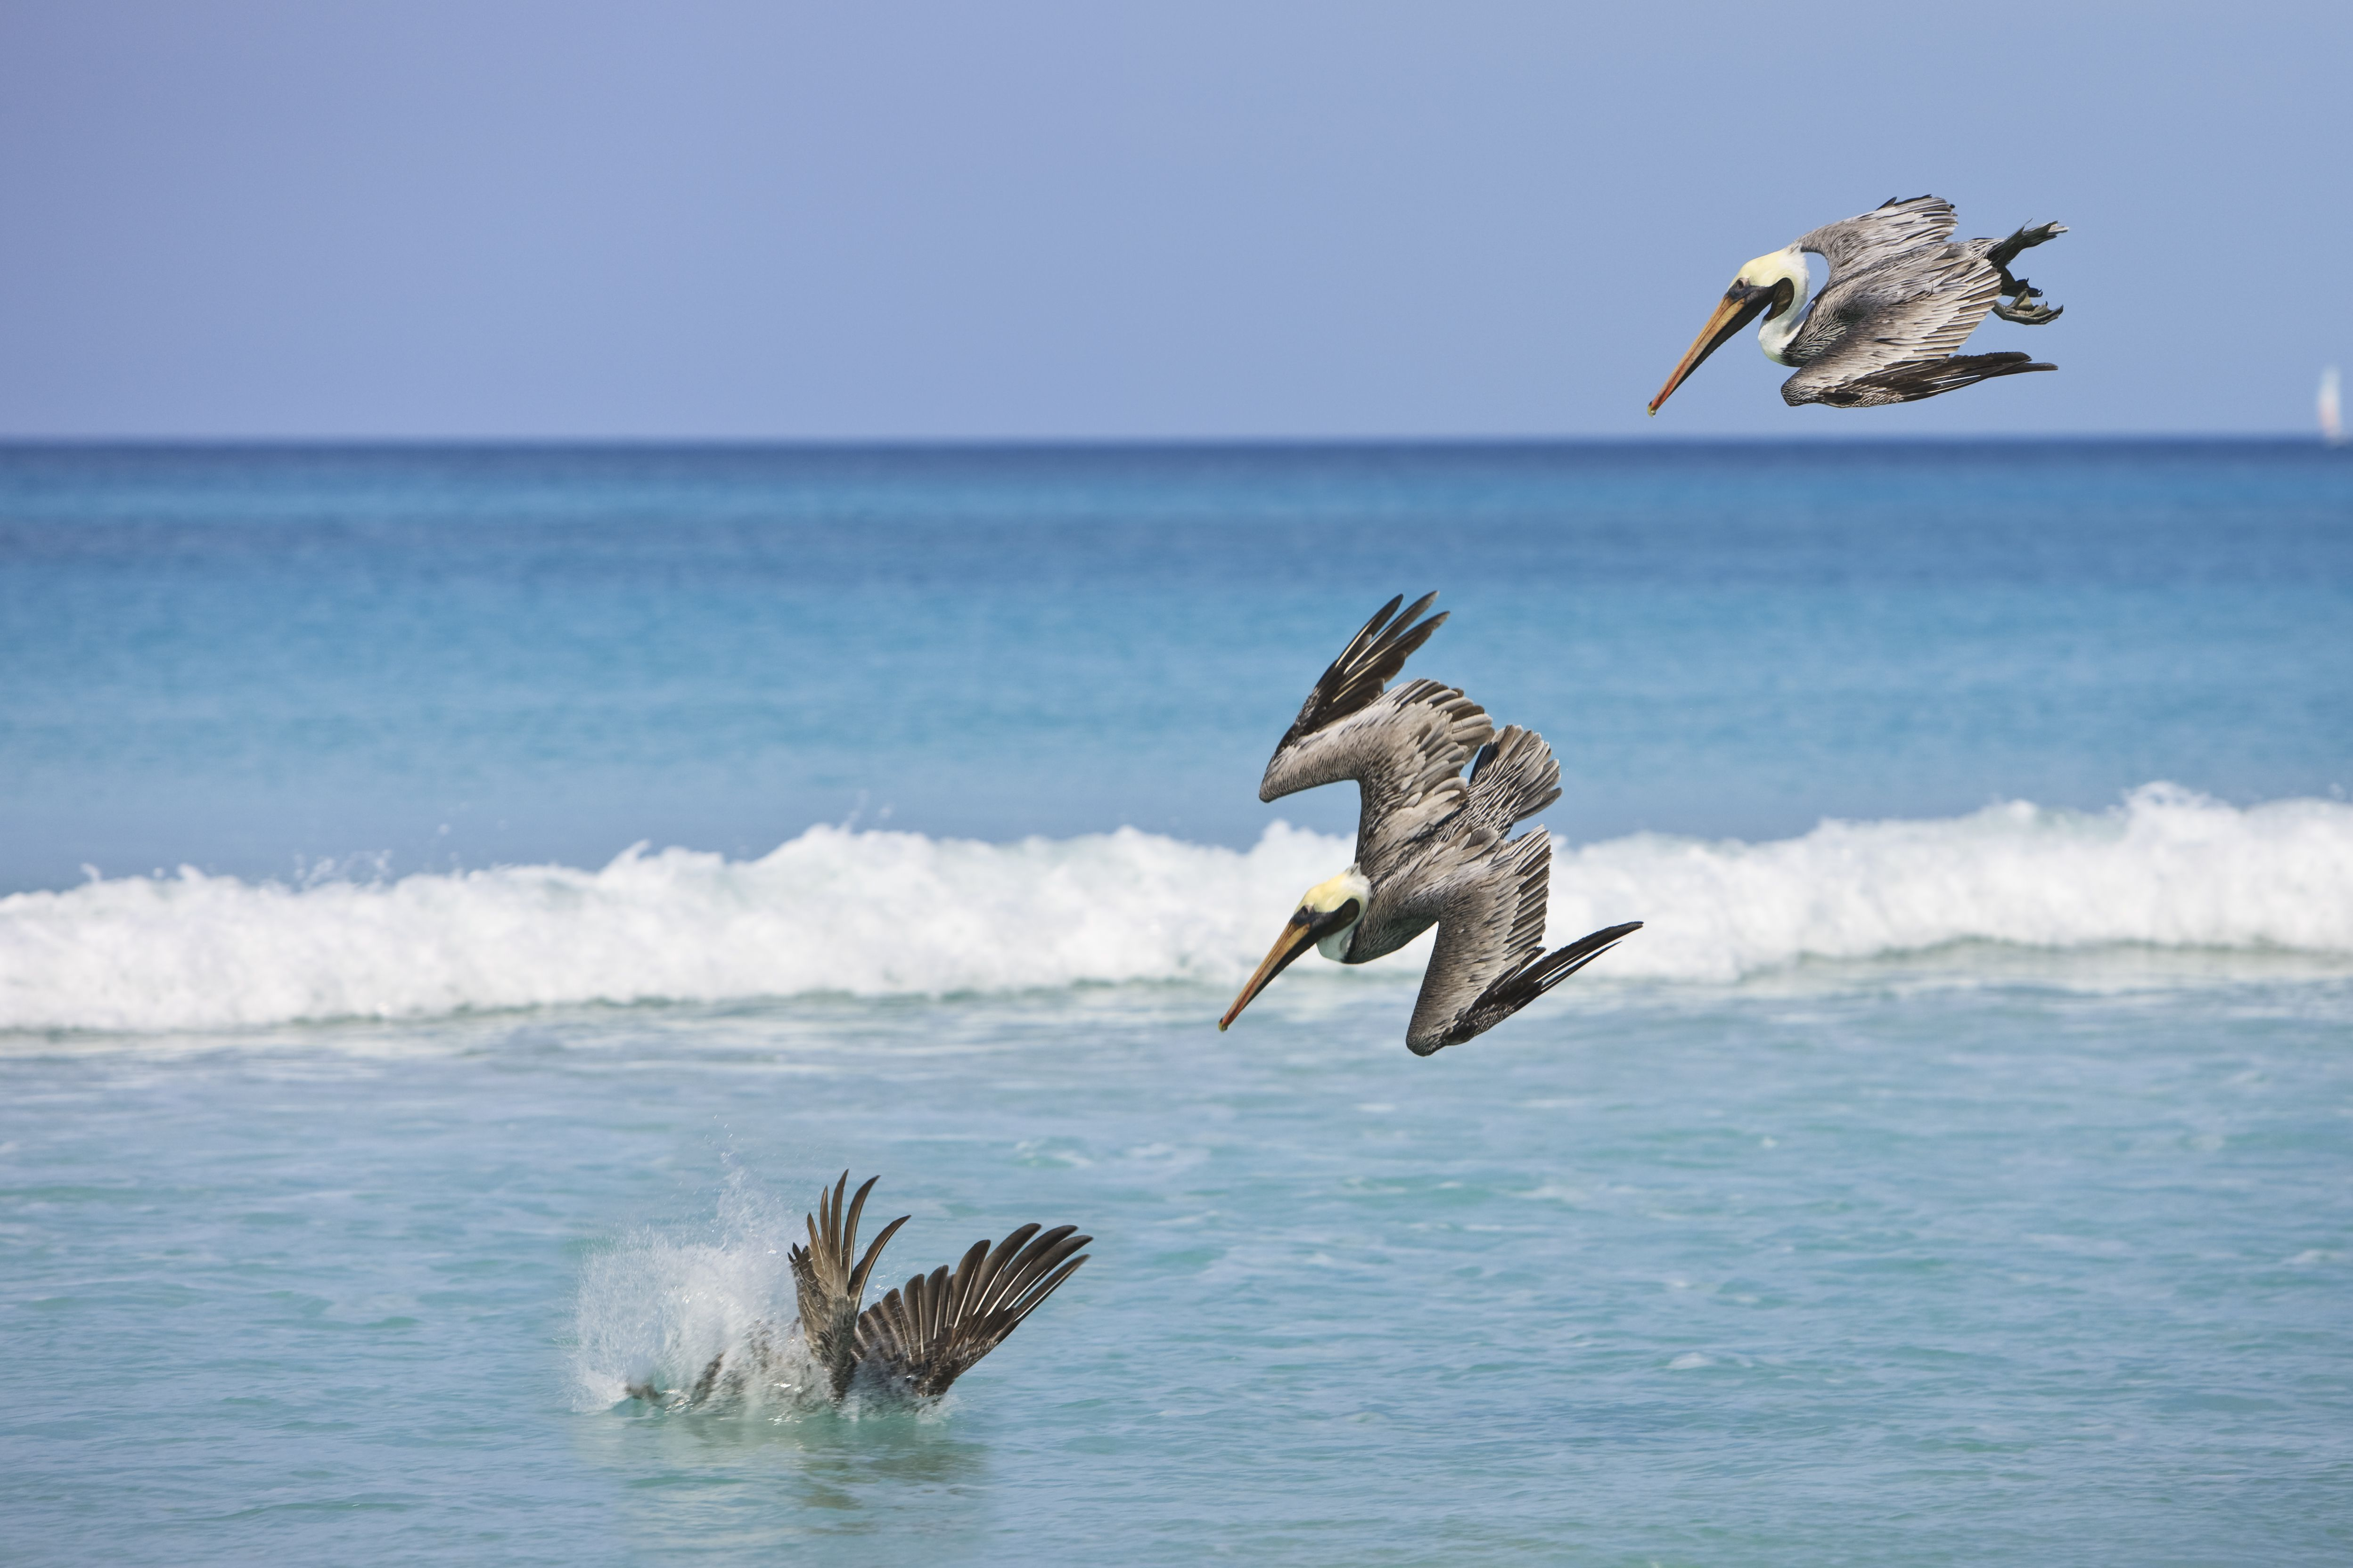 Pelicans Diving for fish